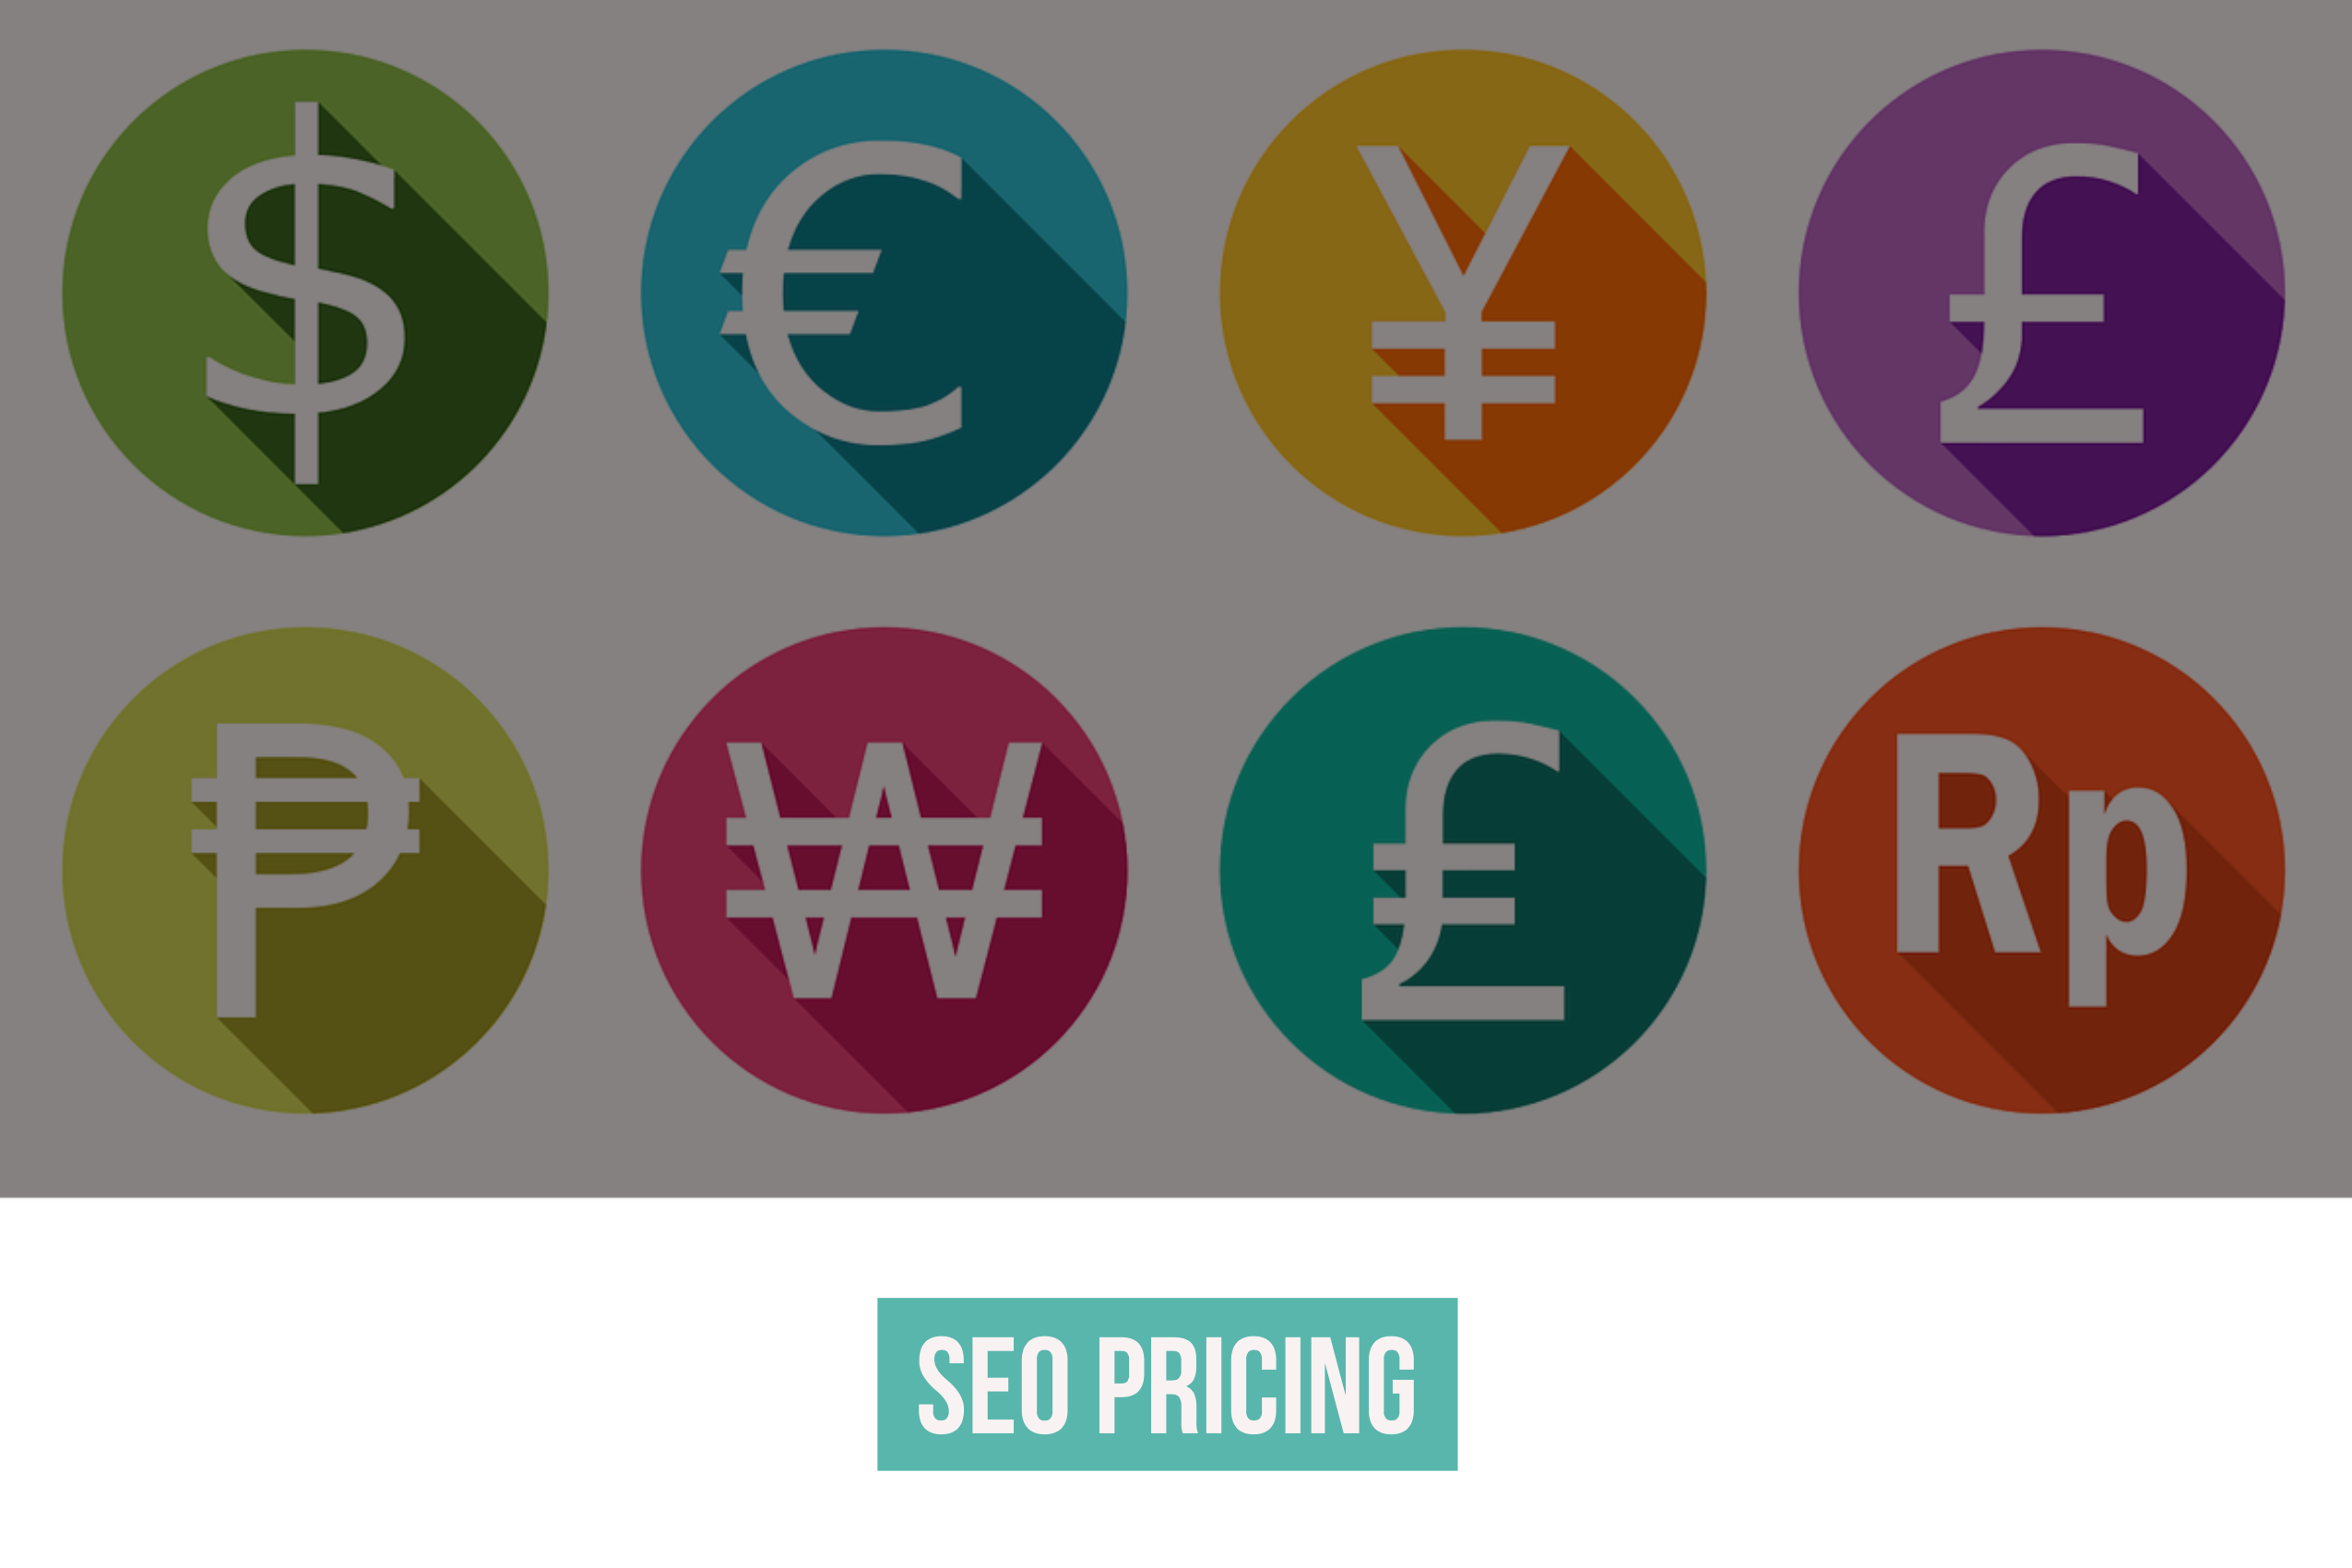 Naggra SEO pricing